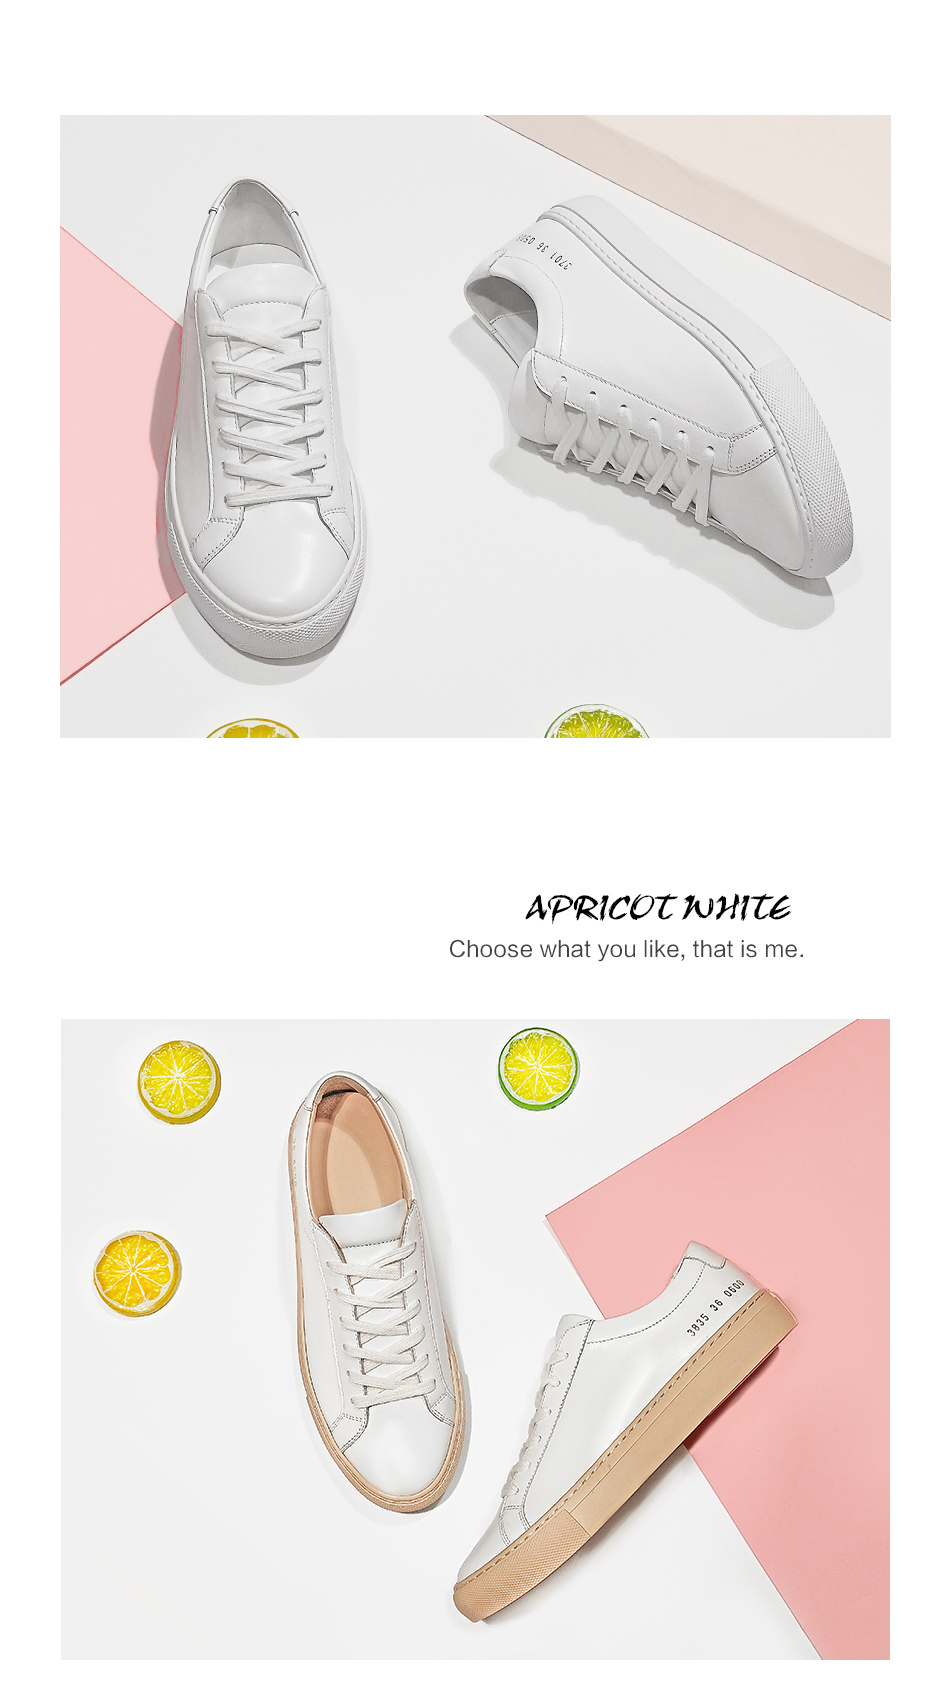 Donna-in Sneakers Women Genuine Leather Flat Low Heel Platform Ladies Lace Up Fashion Breathable Shoes Women 2018 White Nude (6)